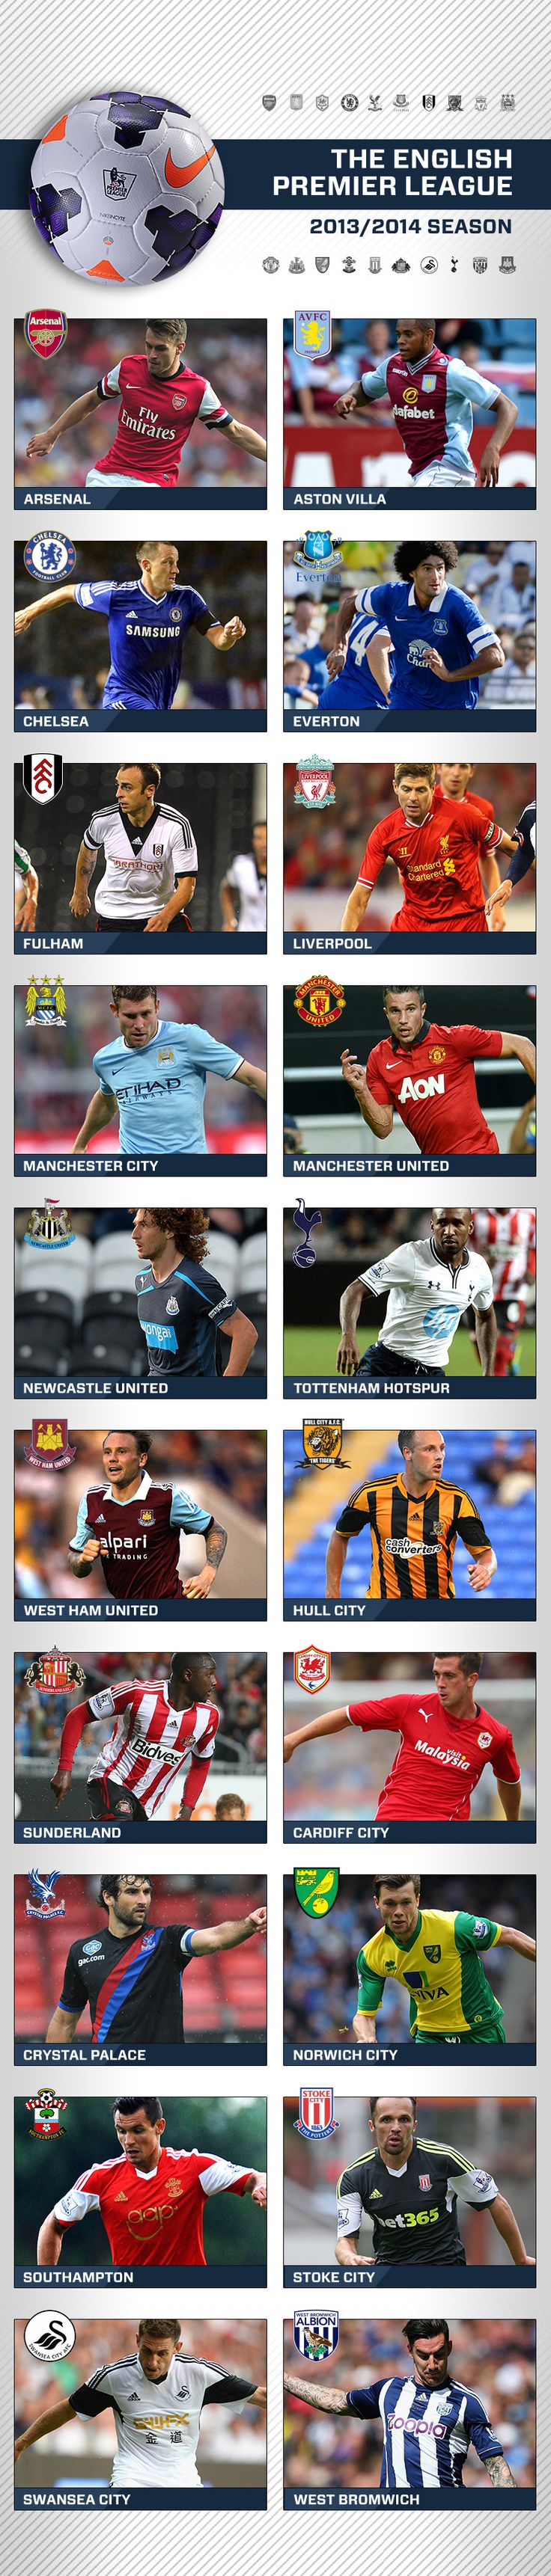 """Can't wait to get home and watch me some o' this :)  """"2013/14 Premier League Teams #EPL"""""""